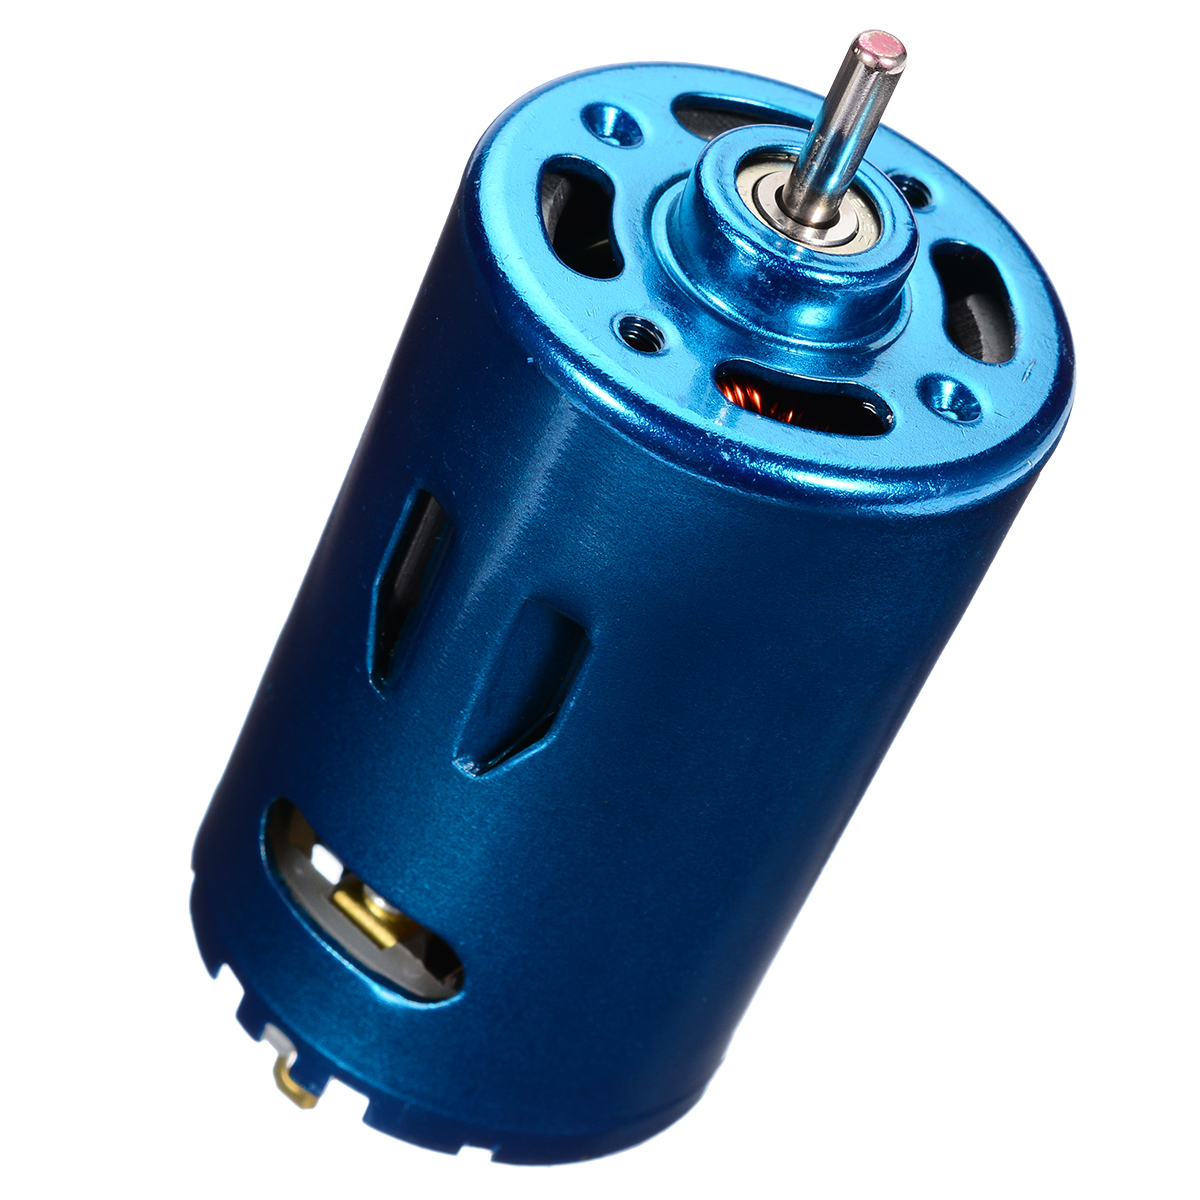 High Torque <font><b>RS</b></font>-550 <font><b>Motor</b></font> 30000RPM DC 12V-24V with High Accuracy For RC Car Boat Model High Speed DC <font><b>Motor</b></font> image